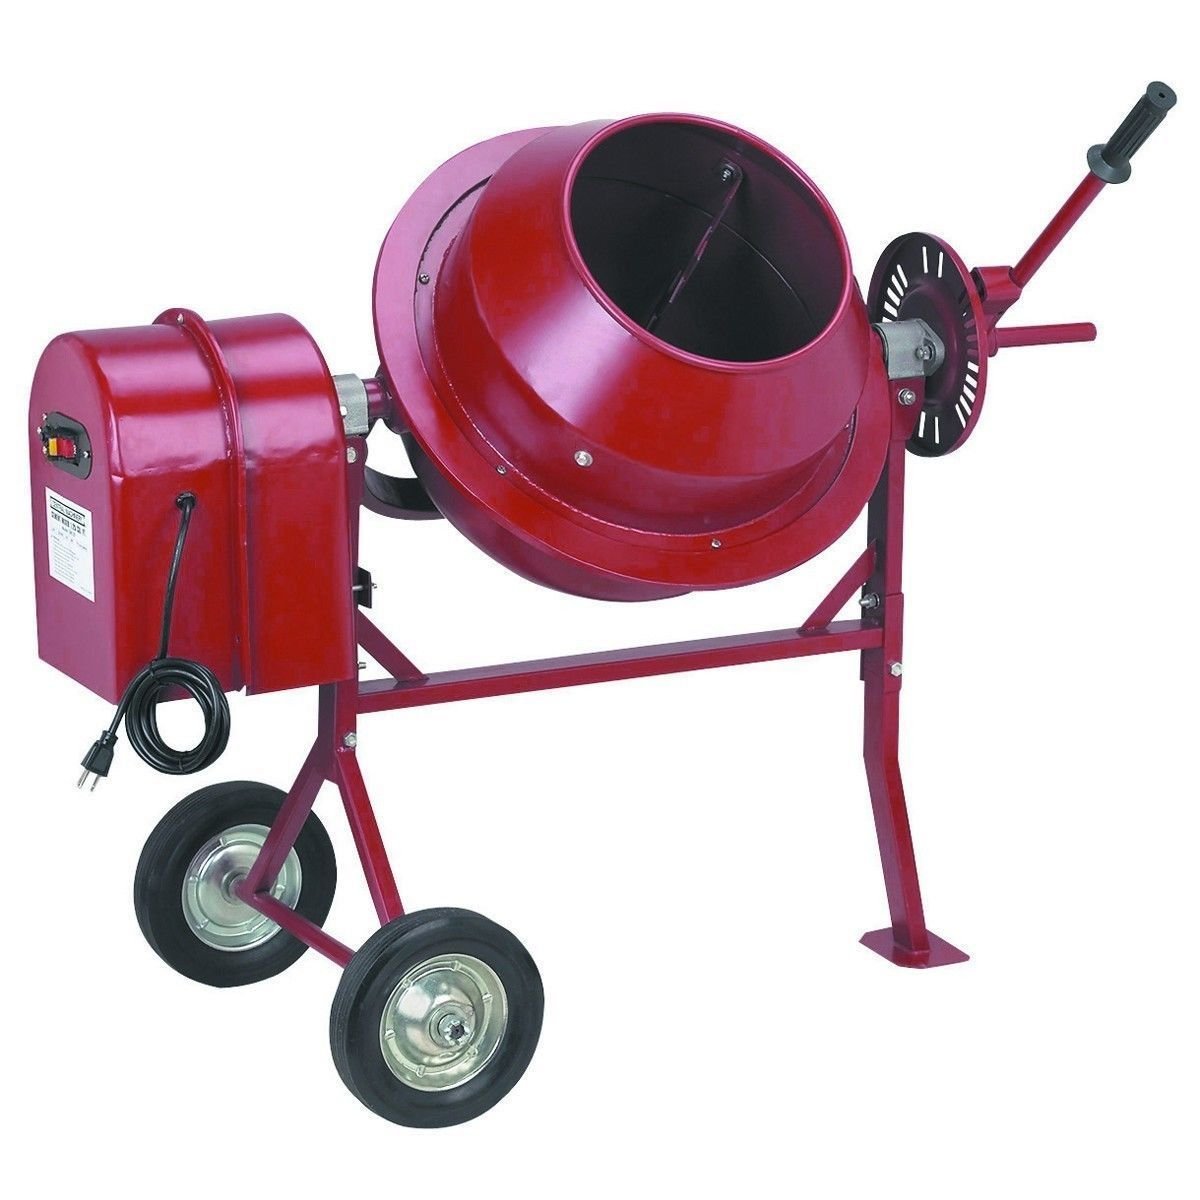 Miniature red cement mixer used with the Extraction Contraption